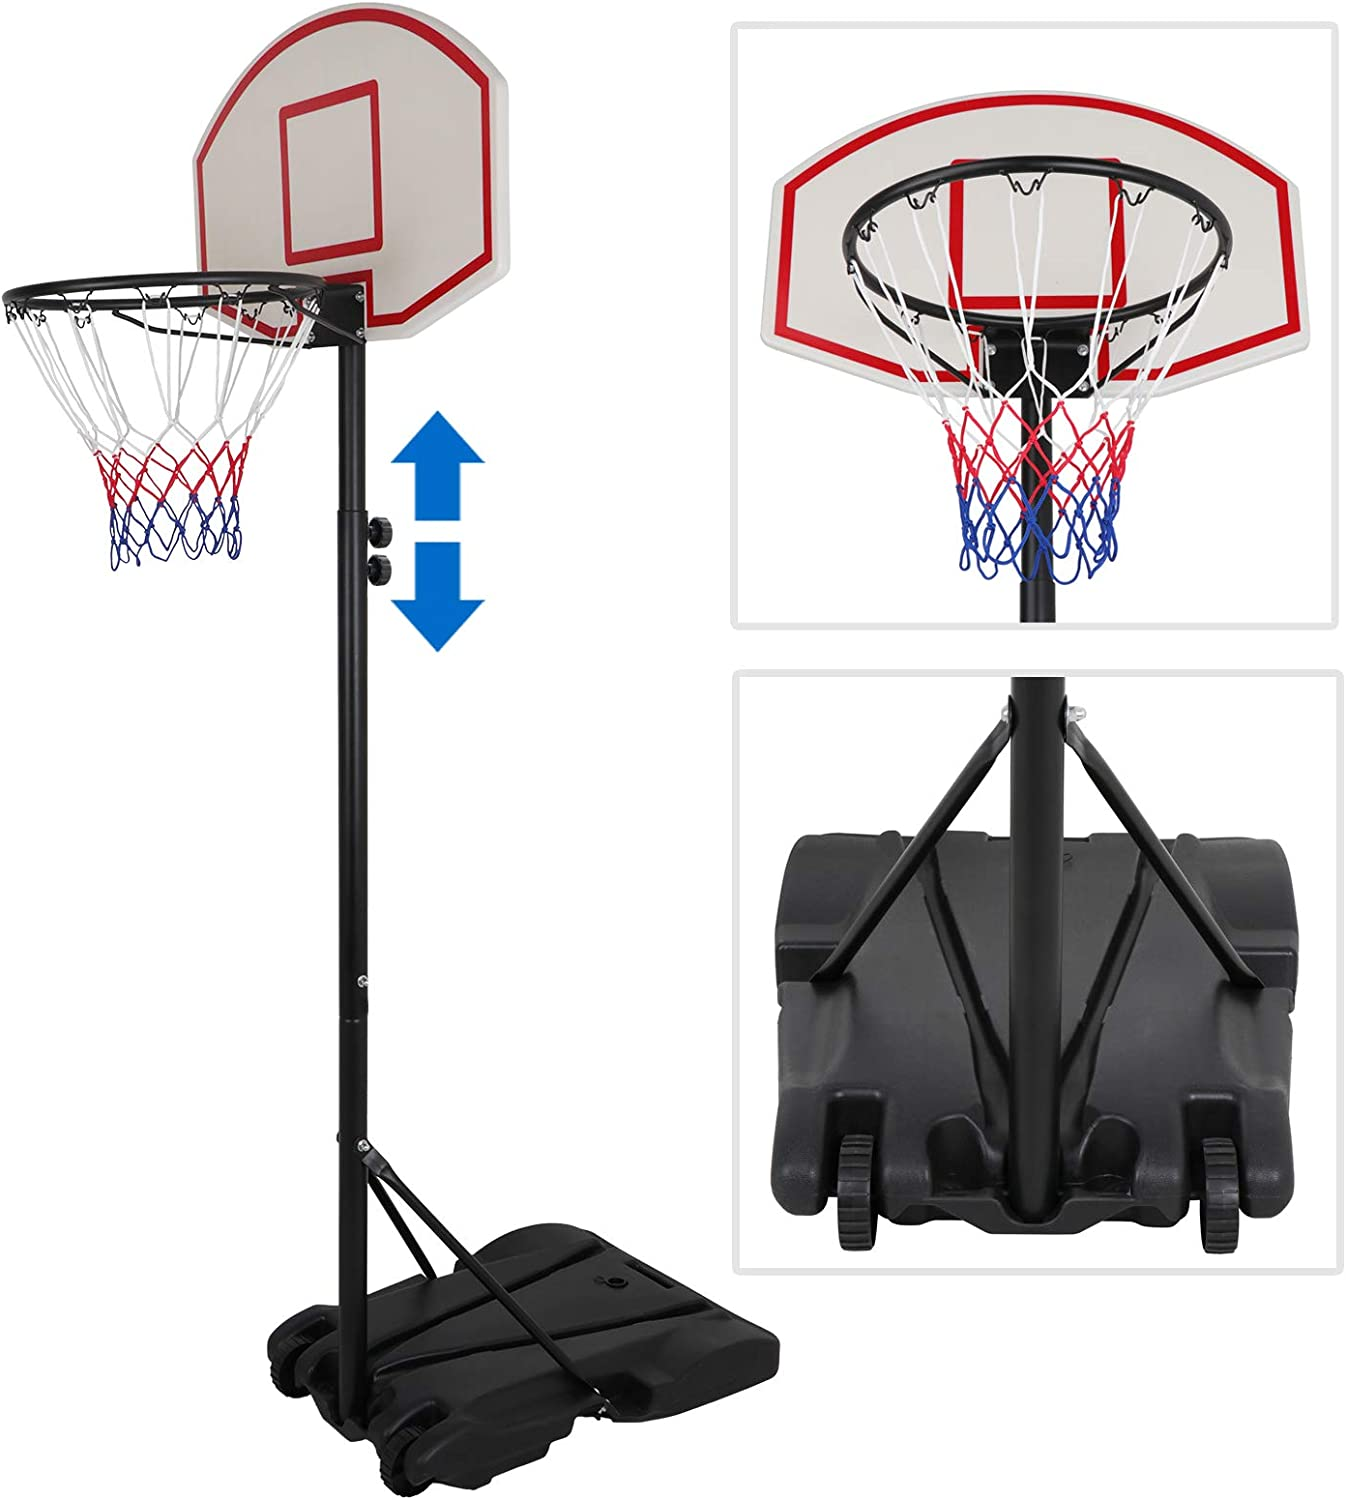 Amazon Com Zeny Portable Basketball Hoop Backboard System Stand And Rim For Kids Youth W Wheels Adjustable Height 5 4ft 7ft Indoor Outdoor Basketball Goal Game Play Set Sports Outdoors